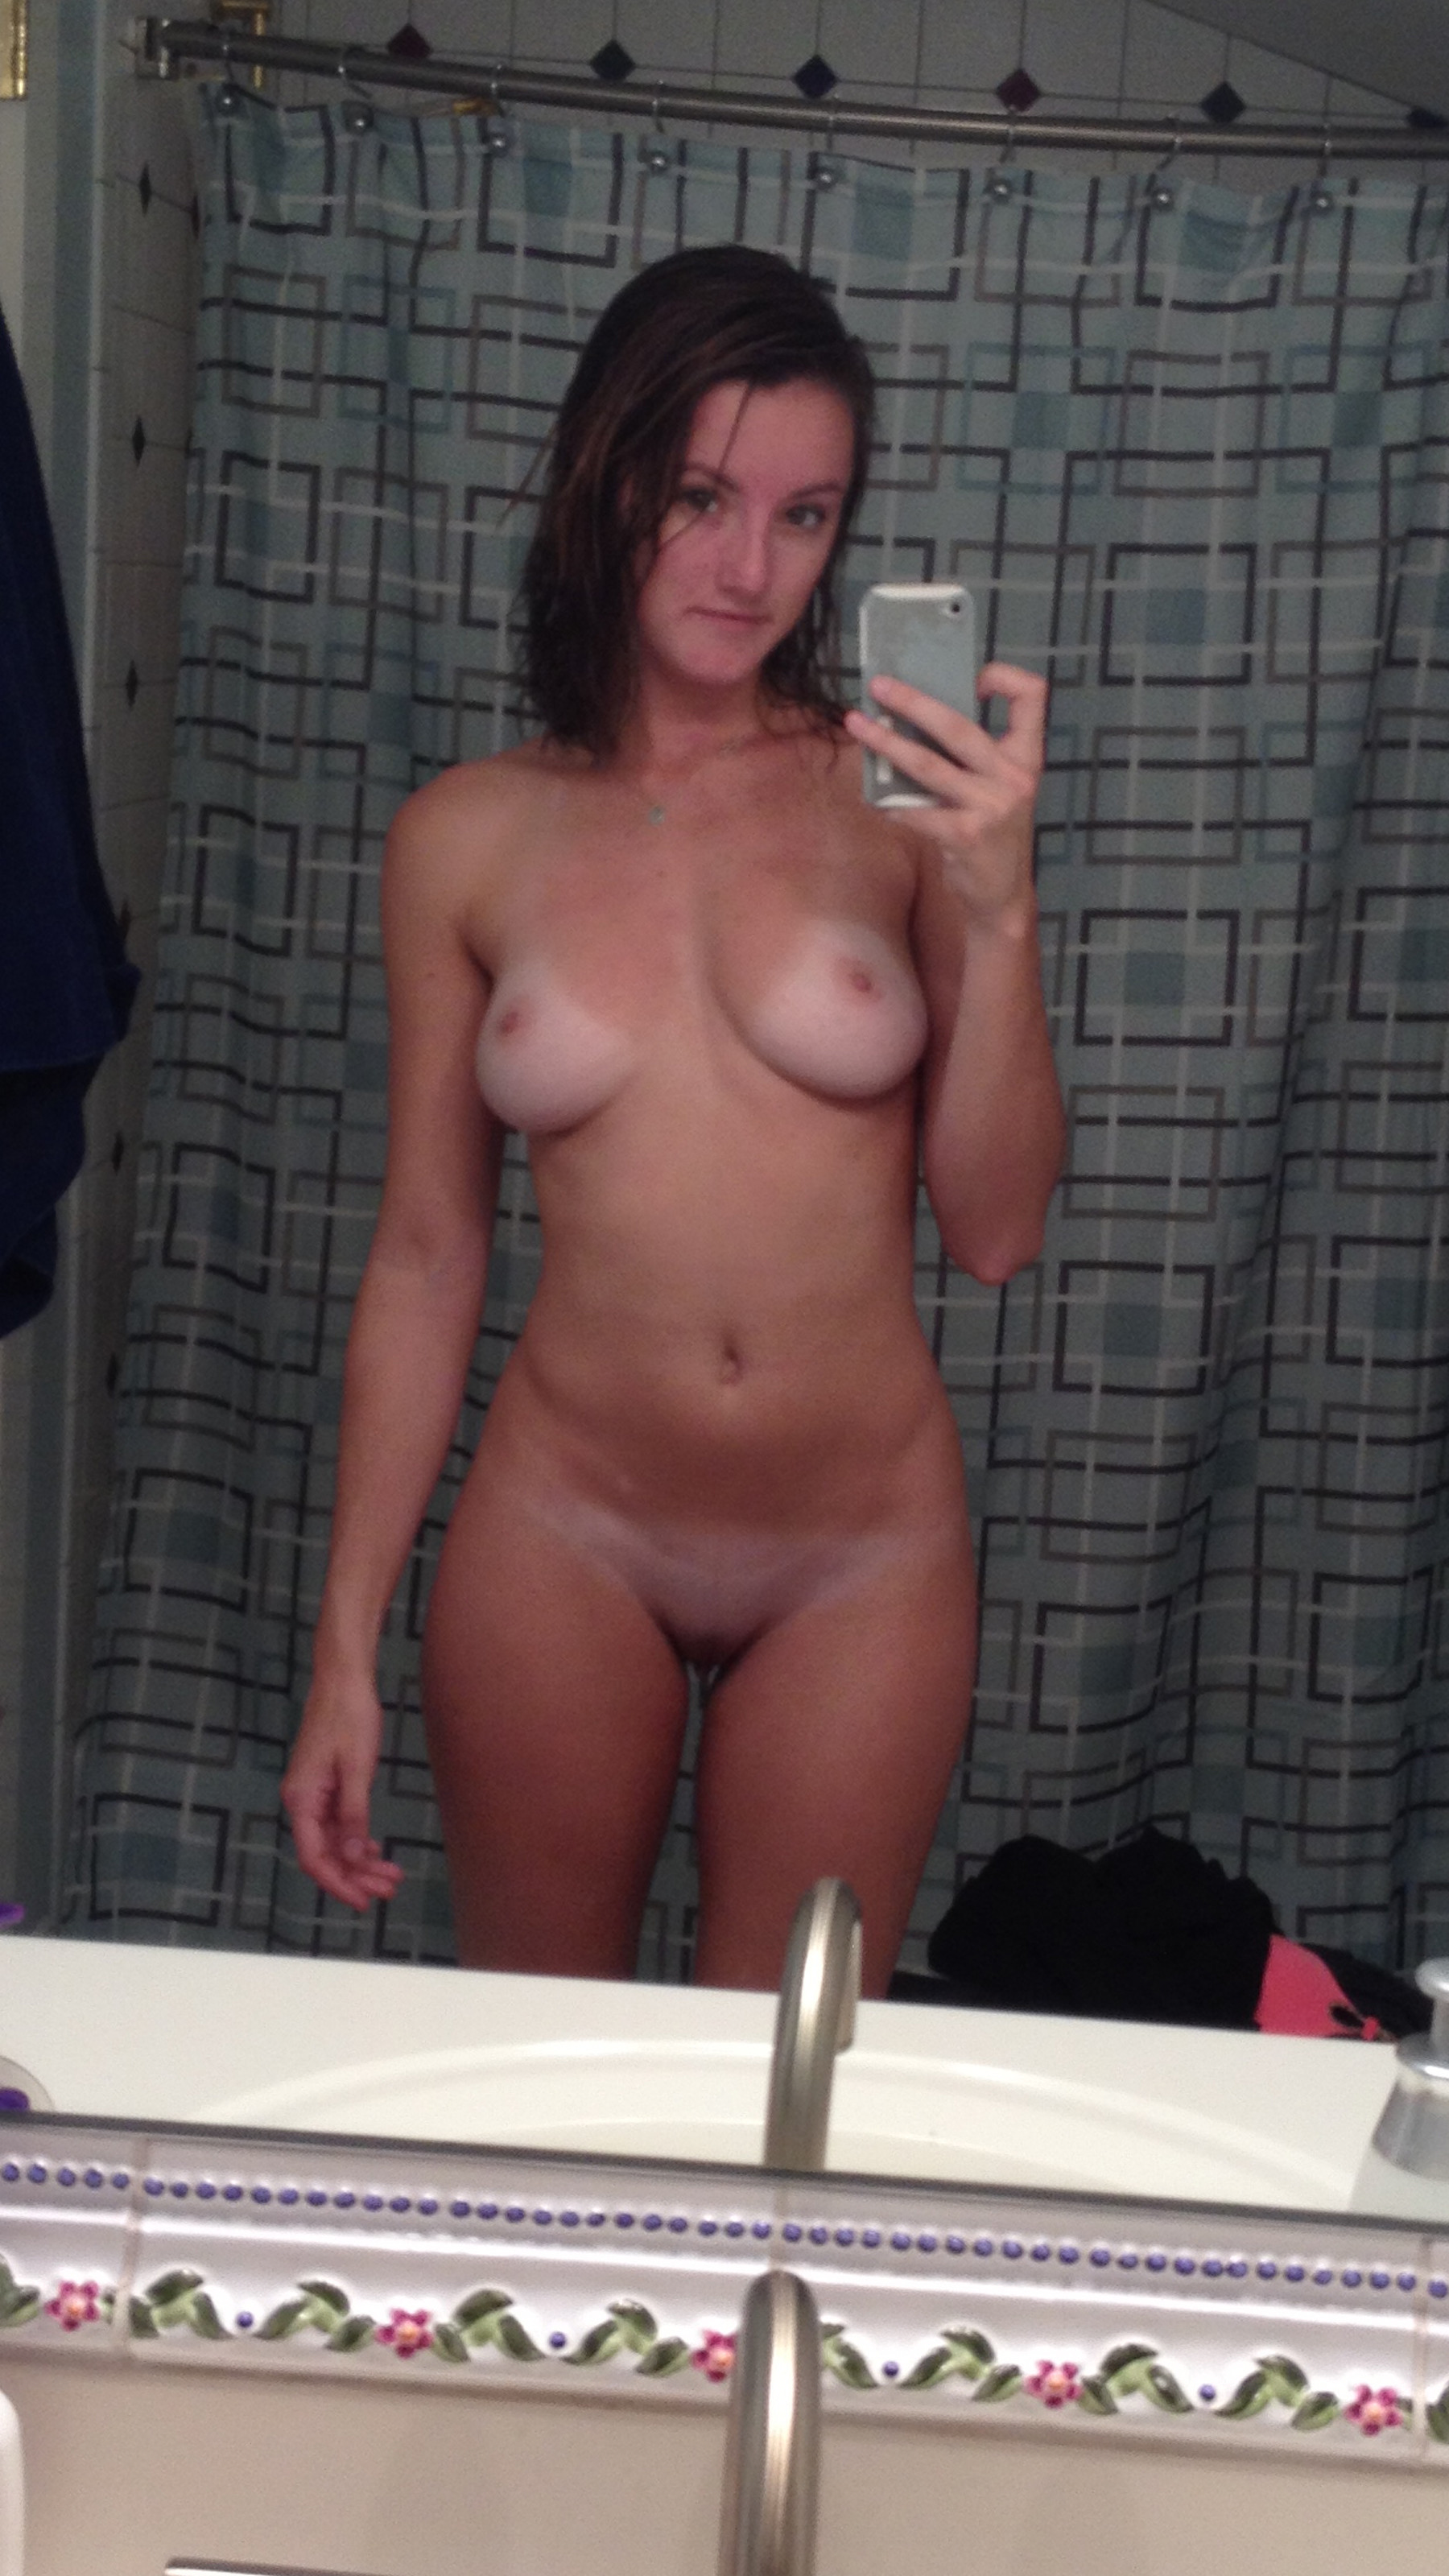 selfie-naked-girls-selfshot-amateur-mix-vol5-60